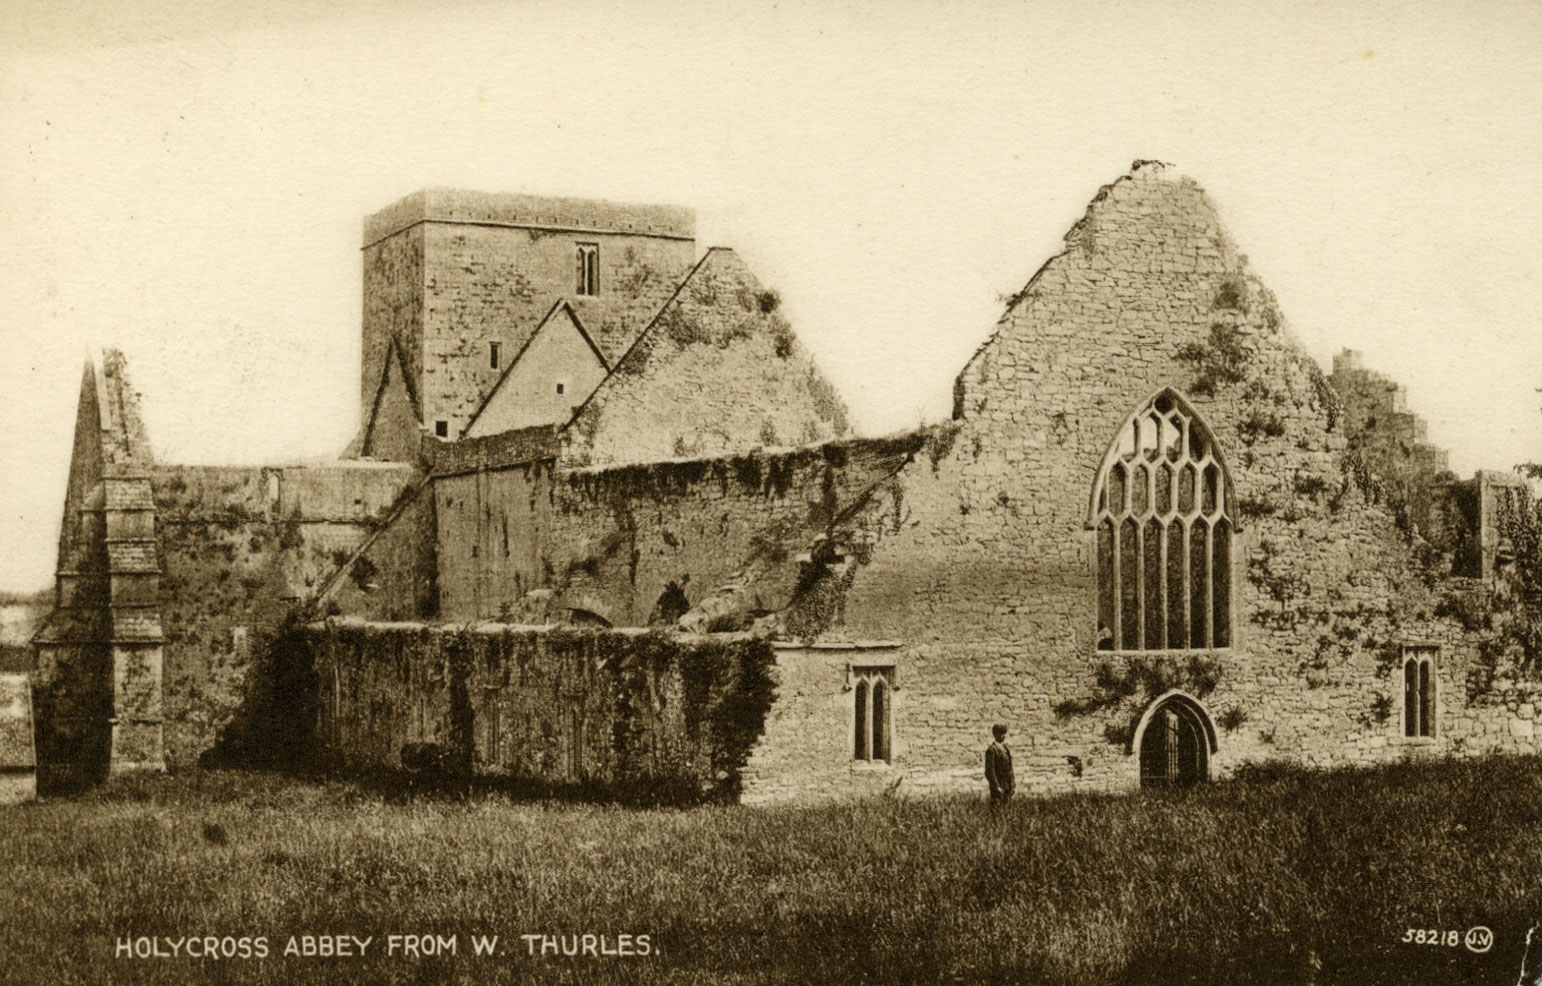 Holycross Abbey, Thurles, County Tipperary - Pre Restoration